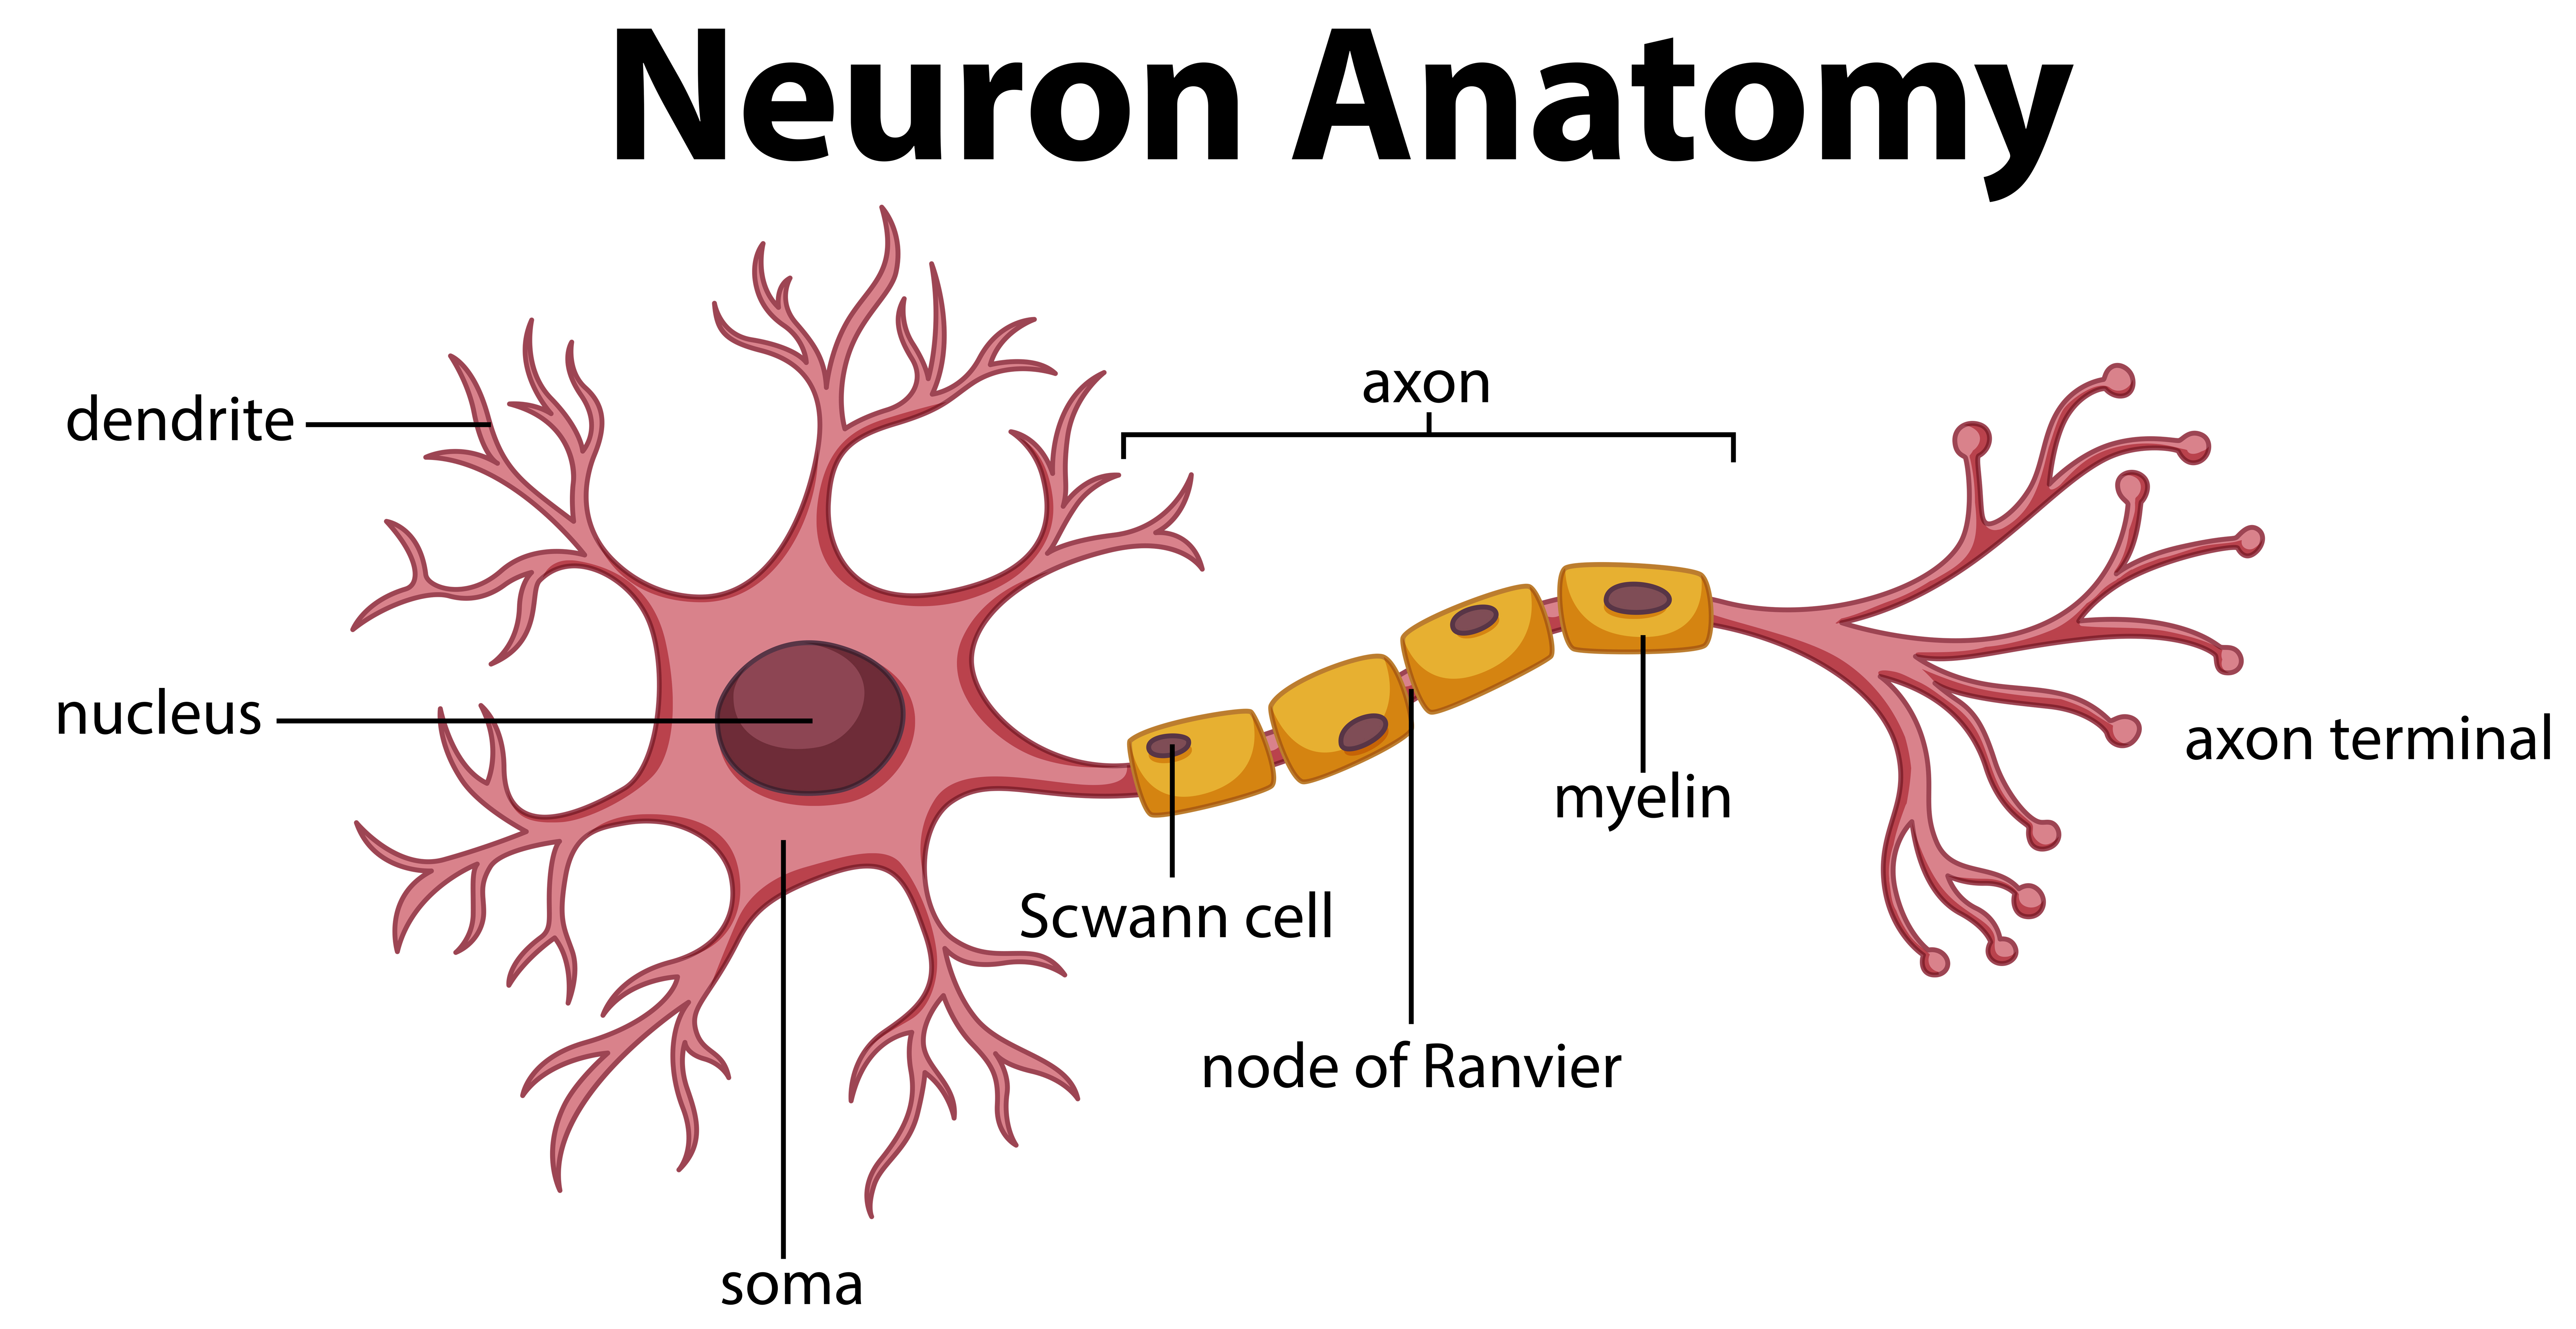 Blank Neuron Diagram